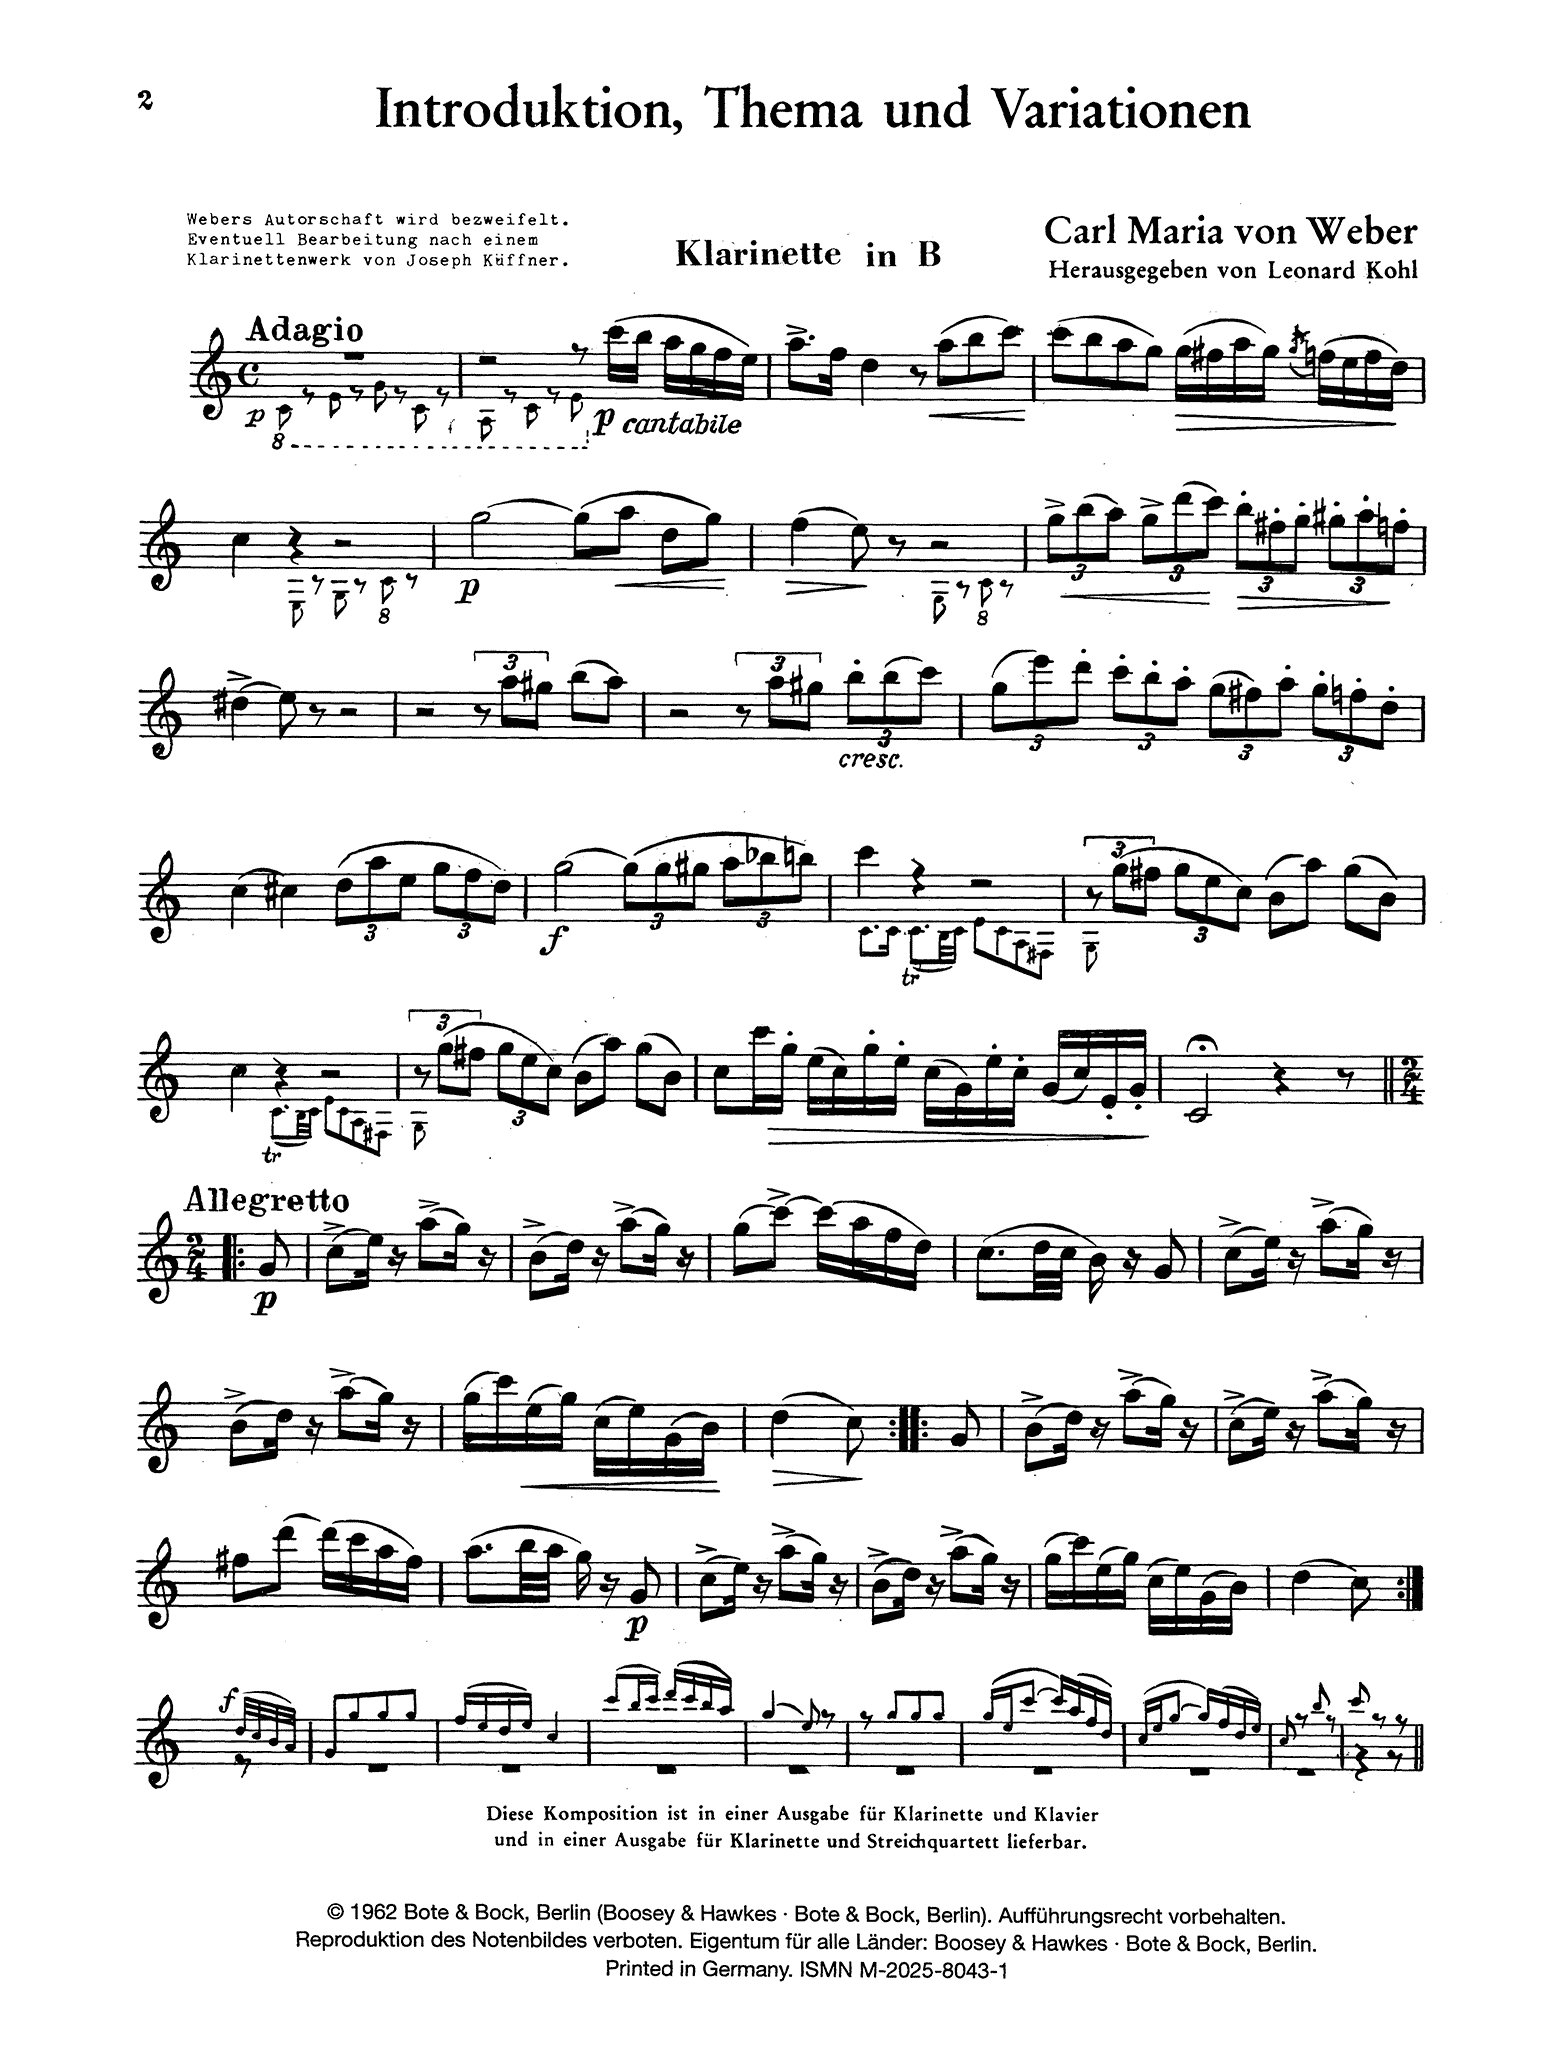 Introduction, Theme & Variations, Op. 32 Clarinet part